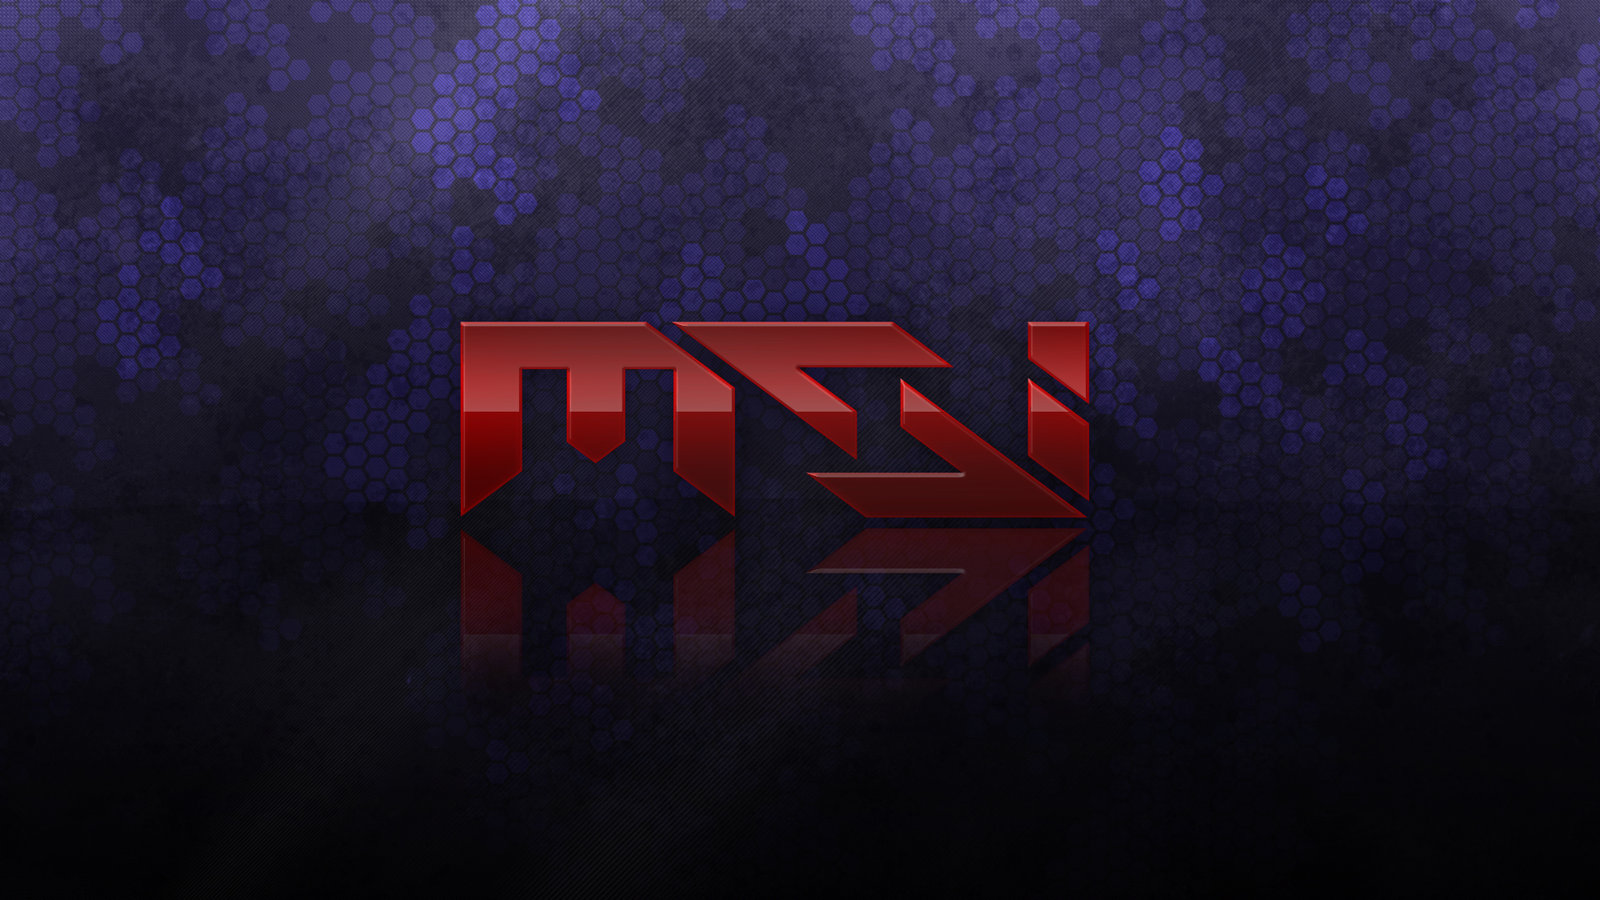 MSI Wallpaper 28